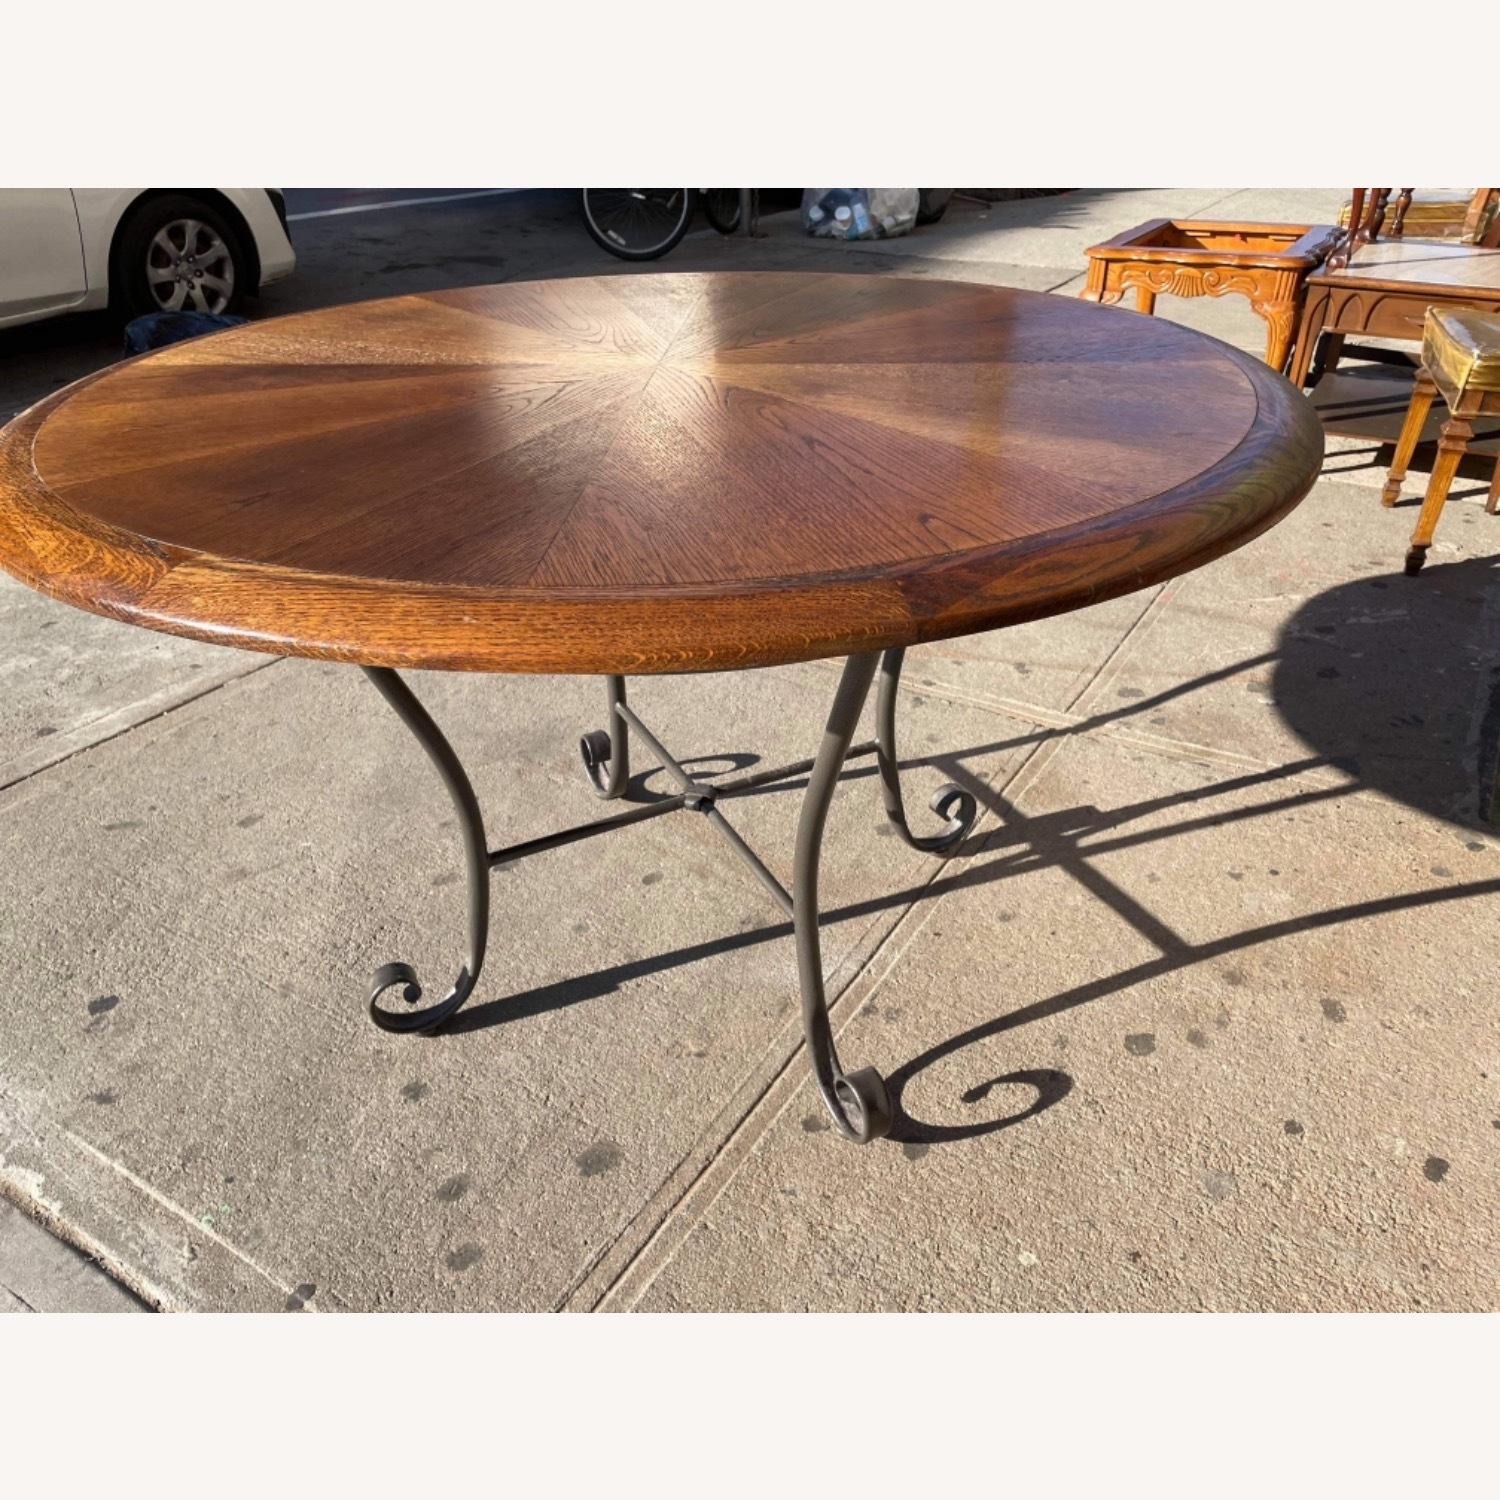 Vintage 1970s Wood & Metal Round Table - image-9